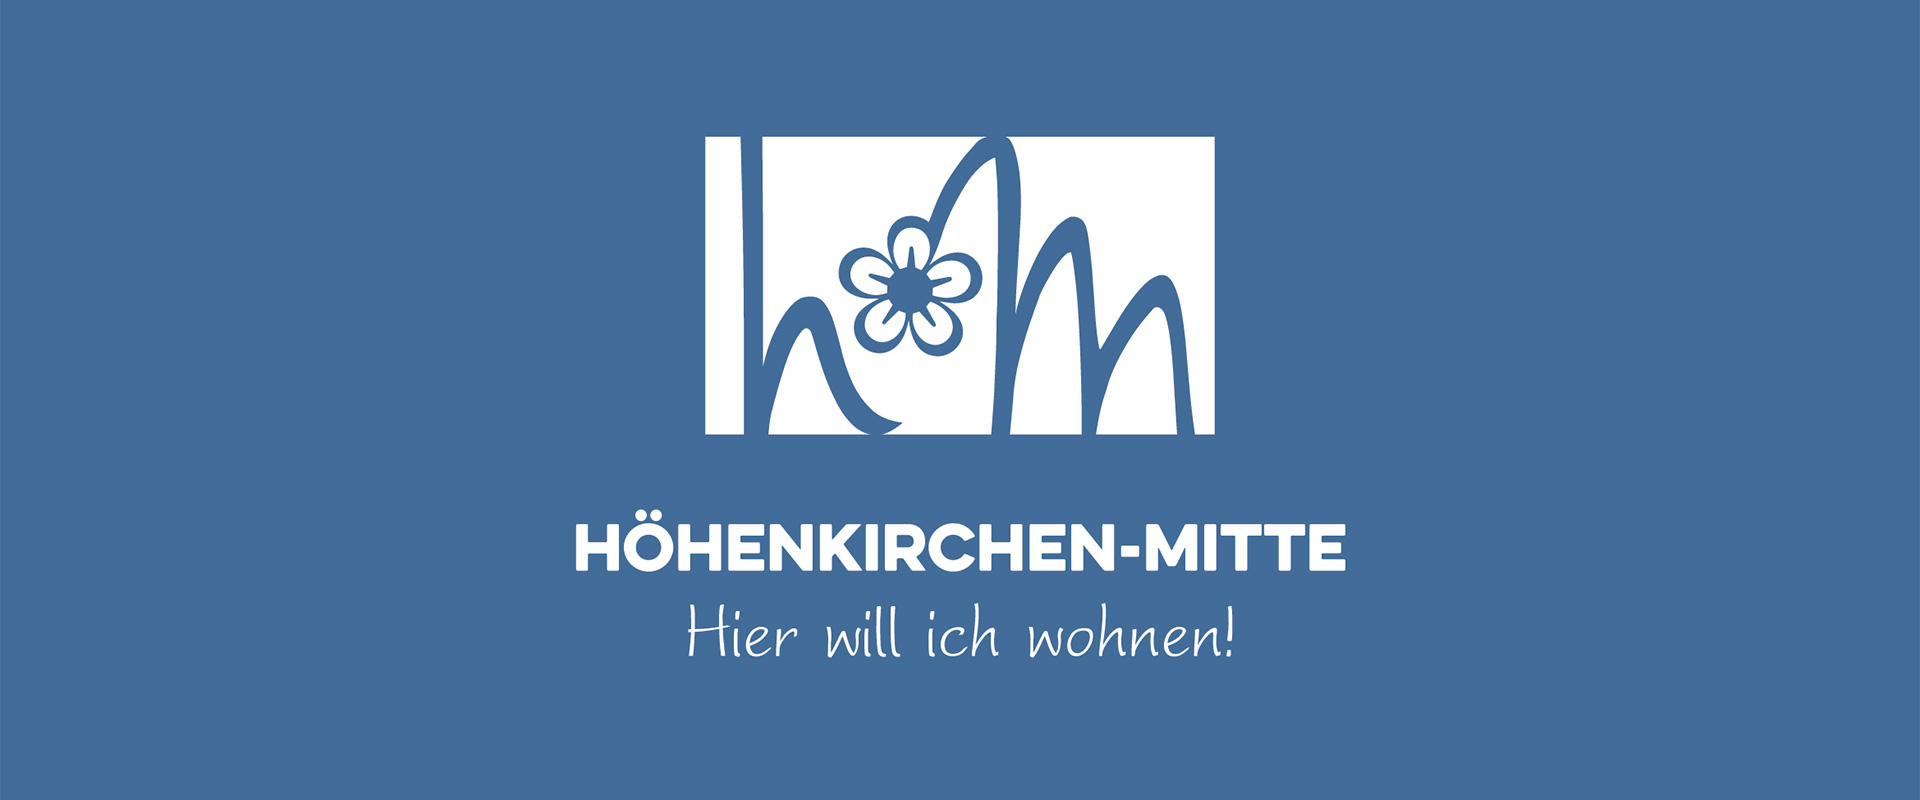 Condominiums and commercial units in Höhenkirchen-Siegertsbrunn - coming soon